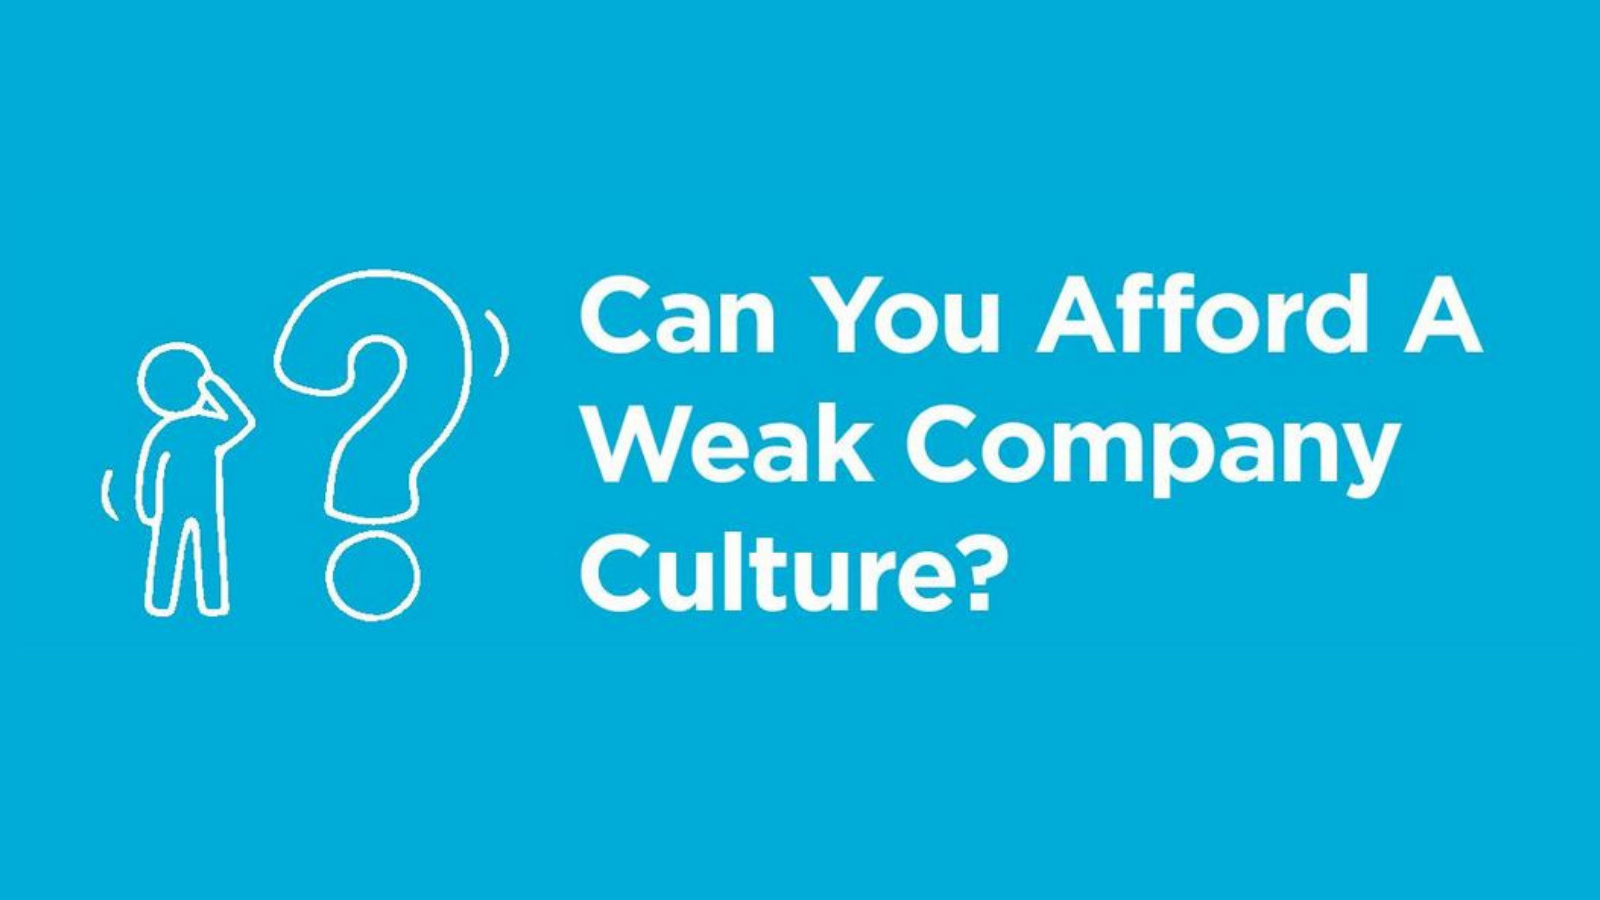 [INFOGRAPHIC] Can You Afford A Weak Company Culture?